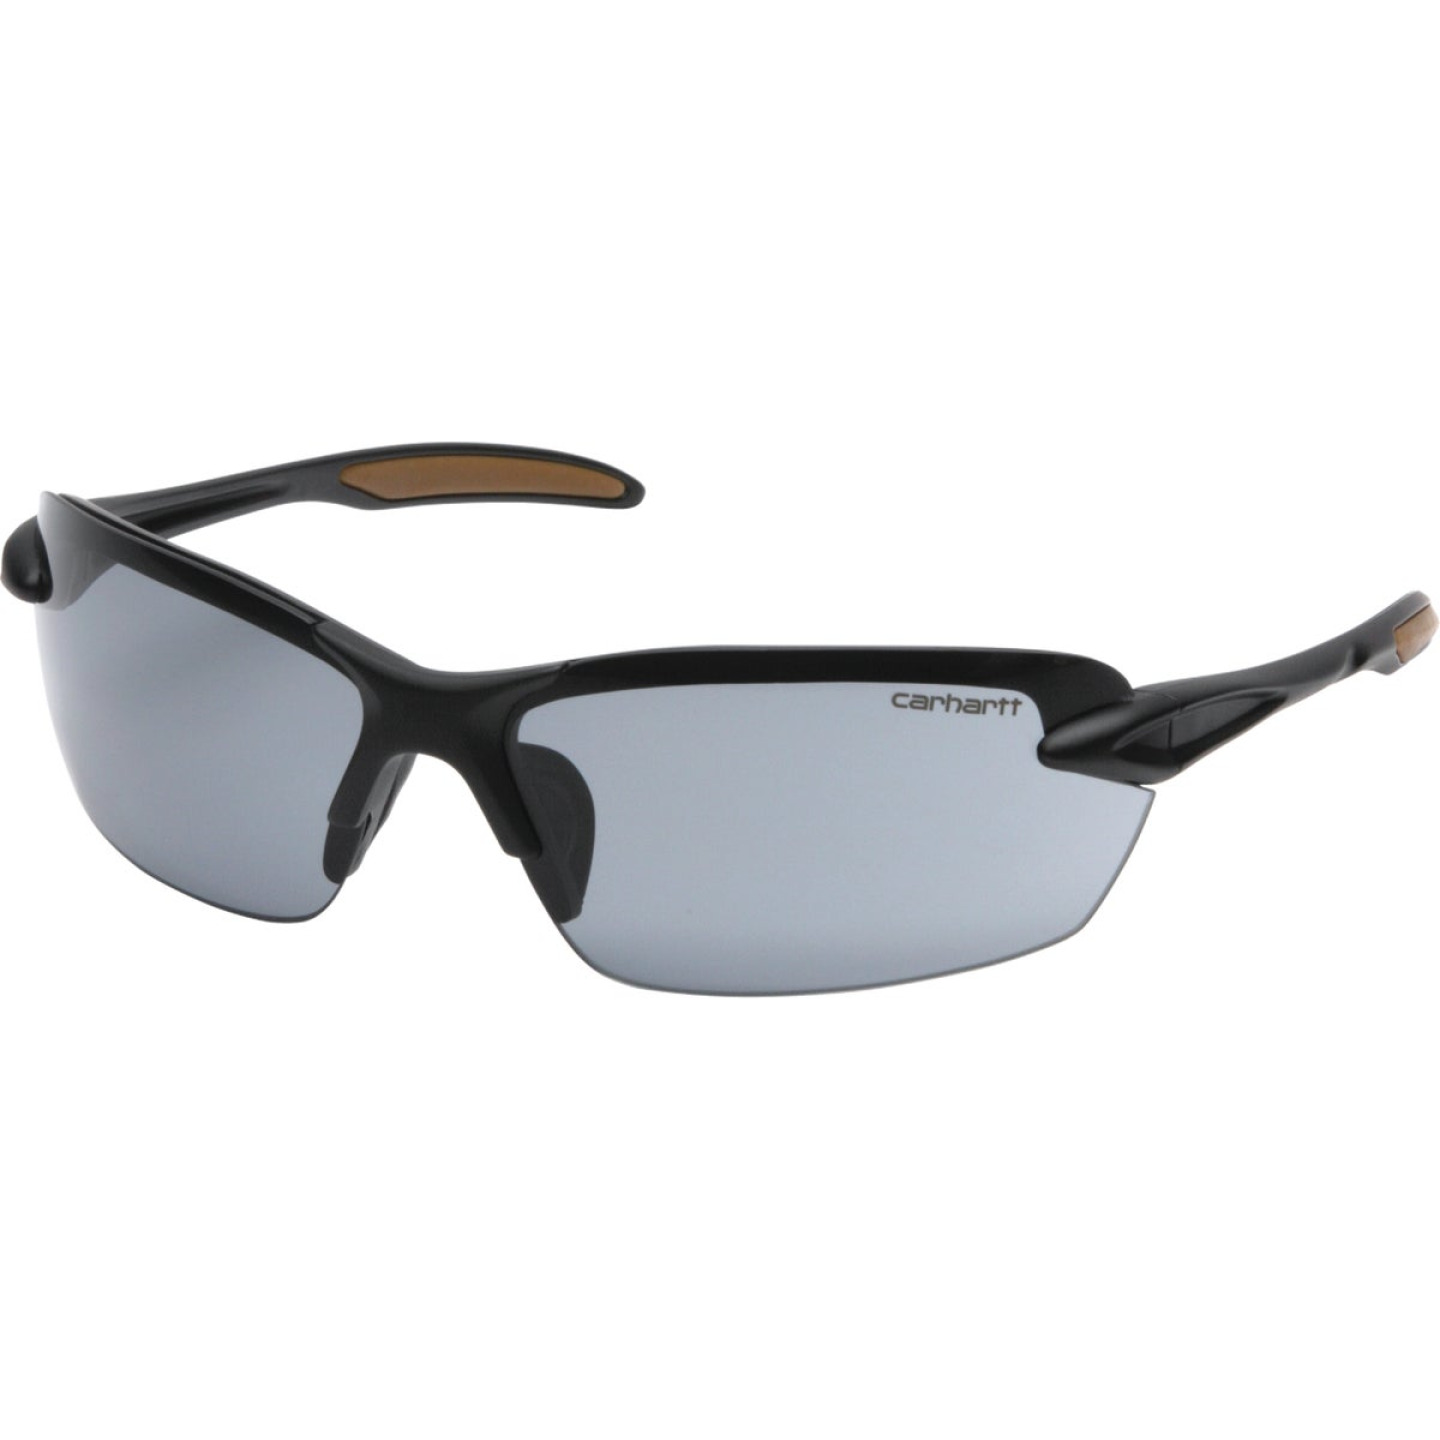 Carhartt Spokane Black Temple Safety Glasses with Gray Lenses Image 1